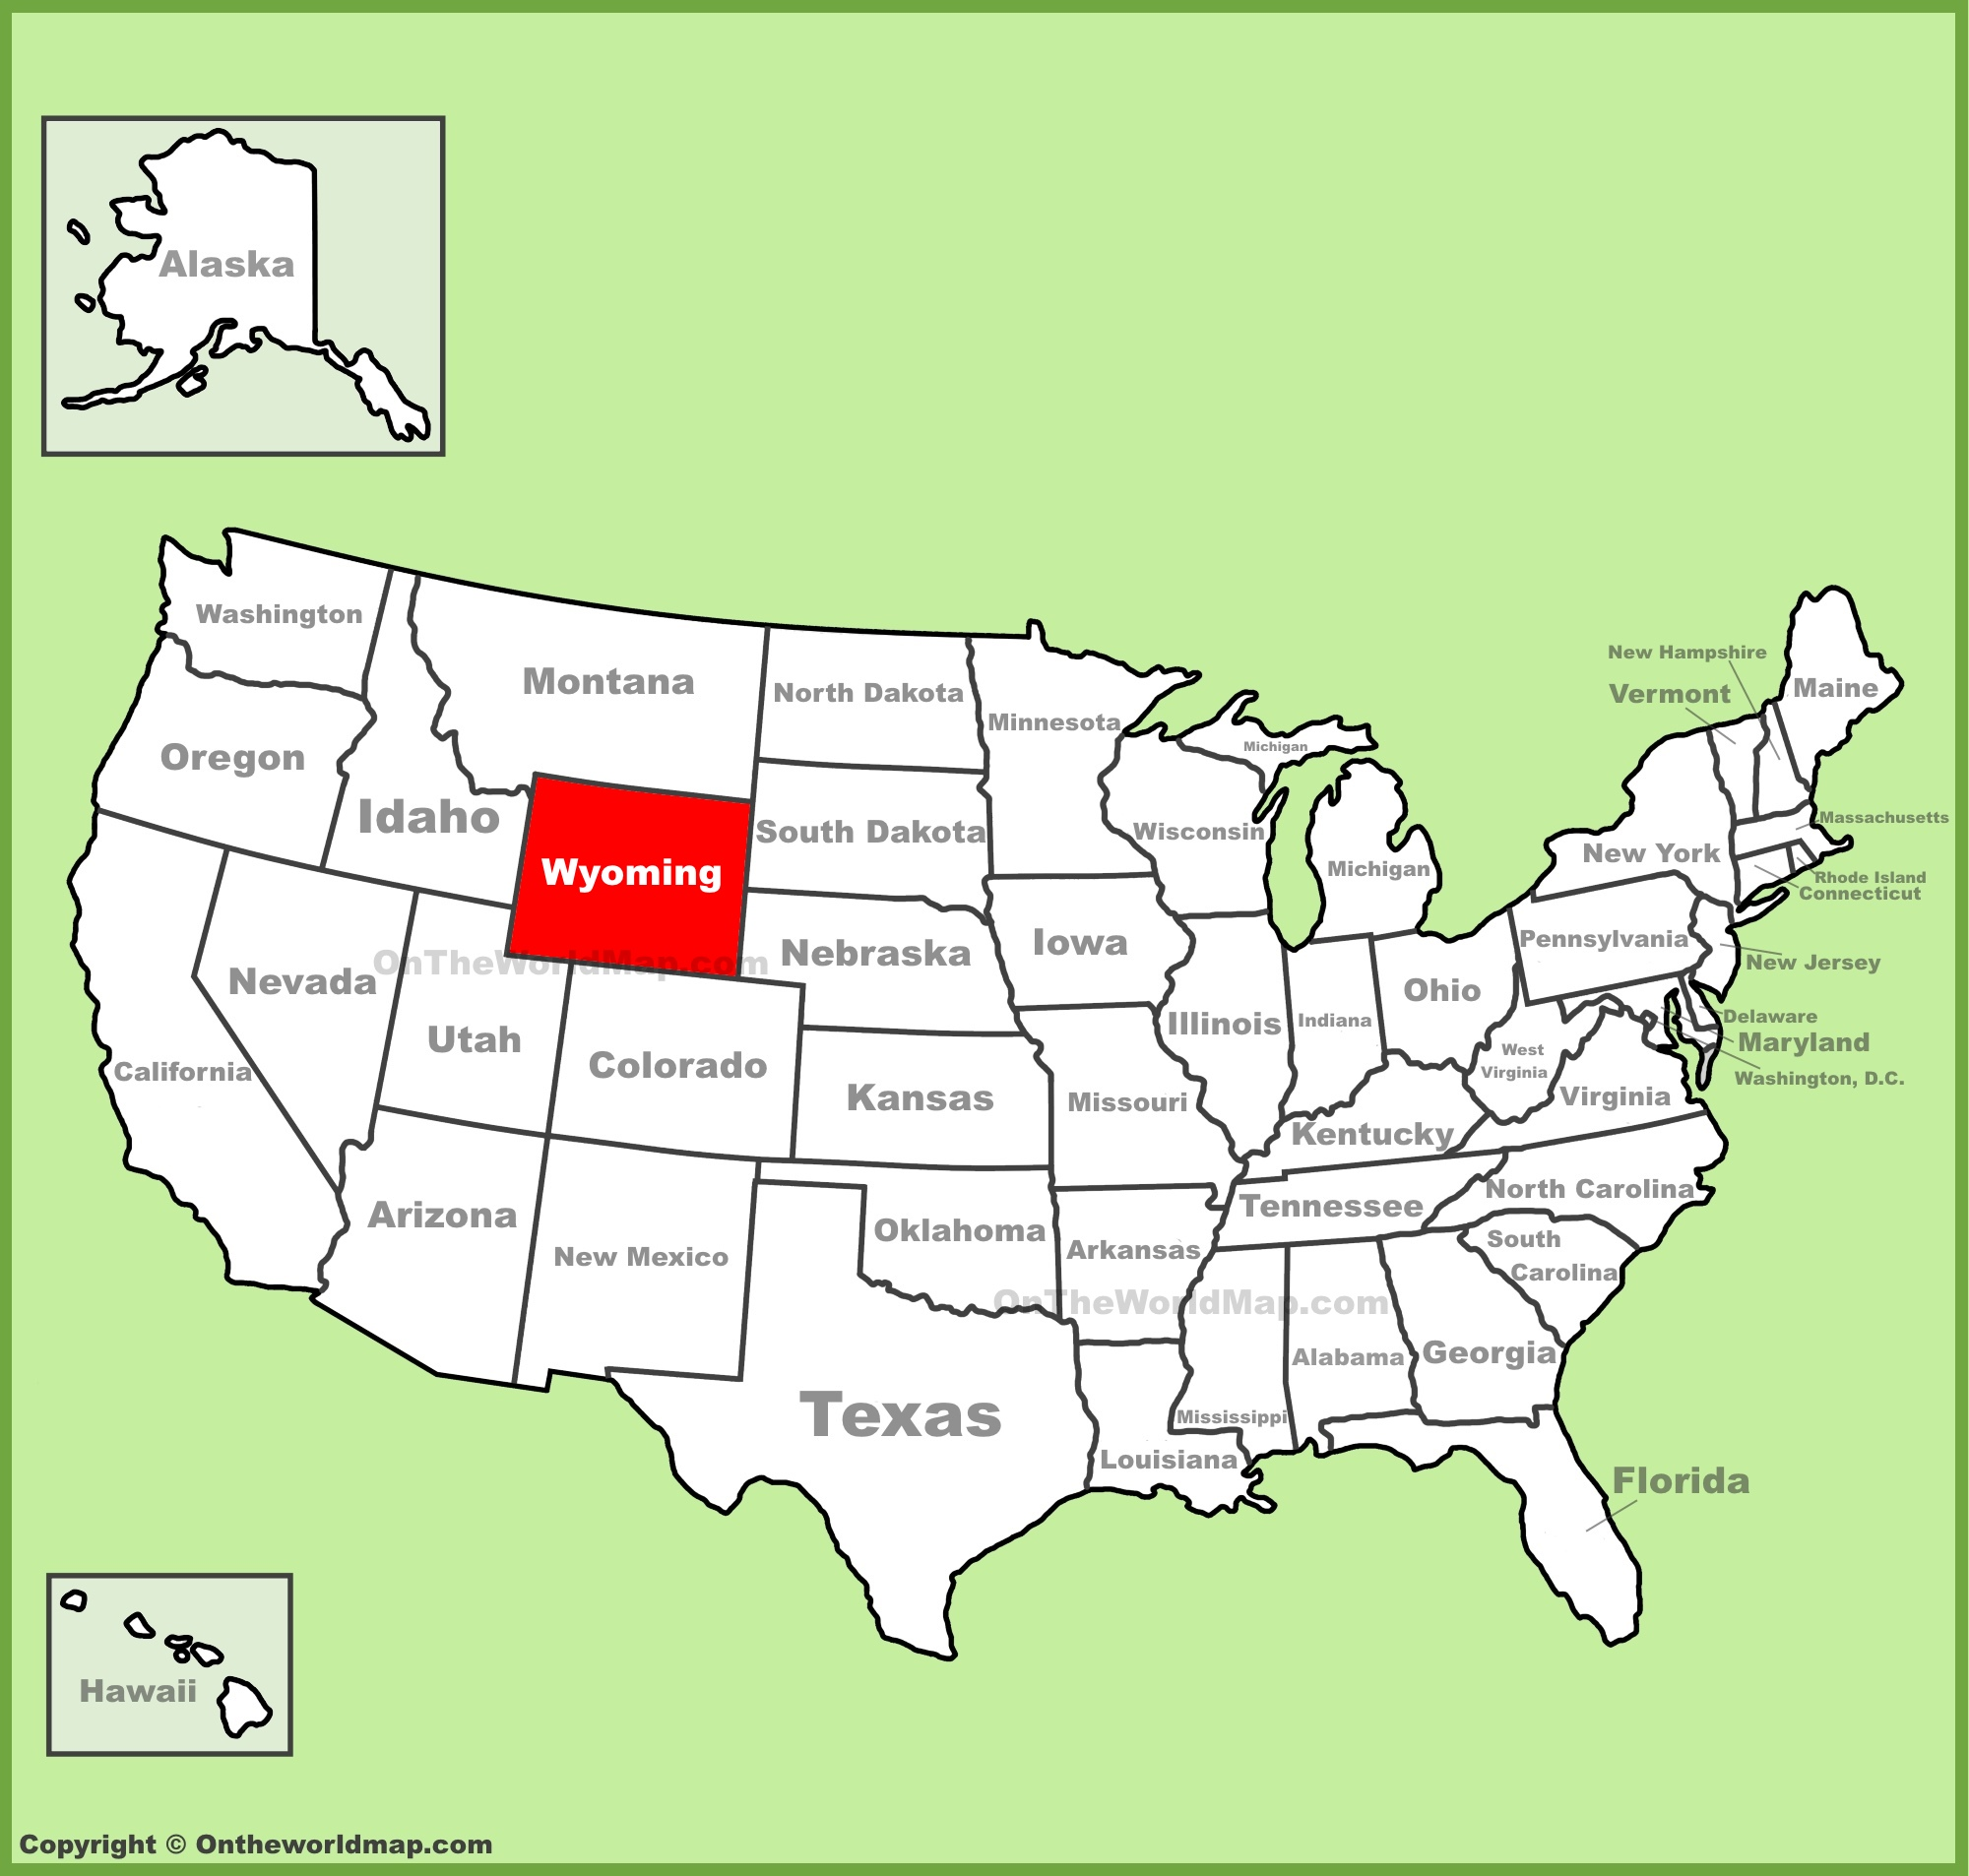 Wyoming State Maps | USA | Maps of Wyoming (WY)